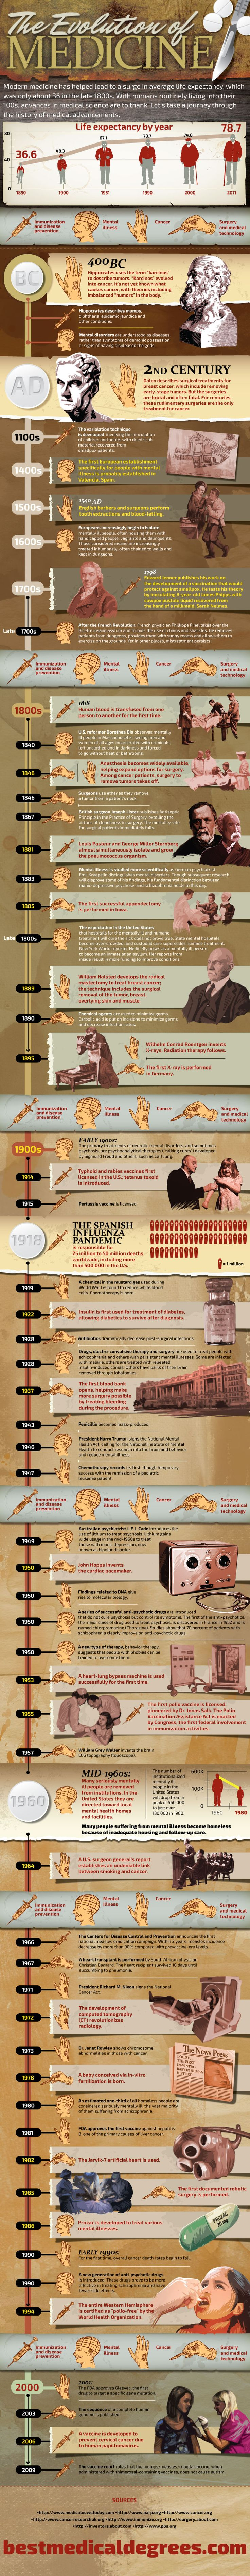 The Evolution of Medicine: A History of Life and Death